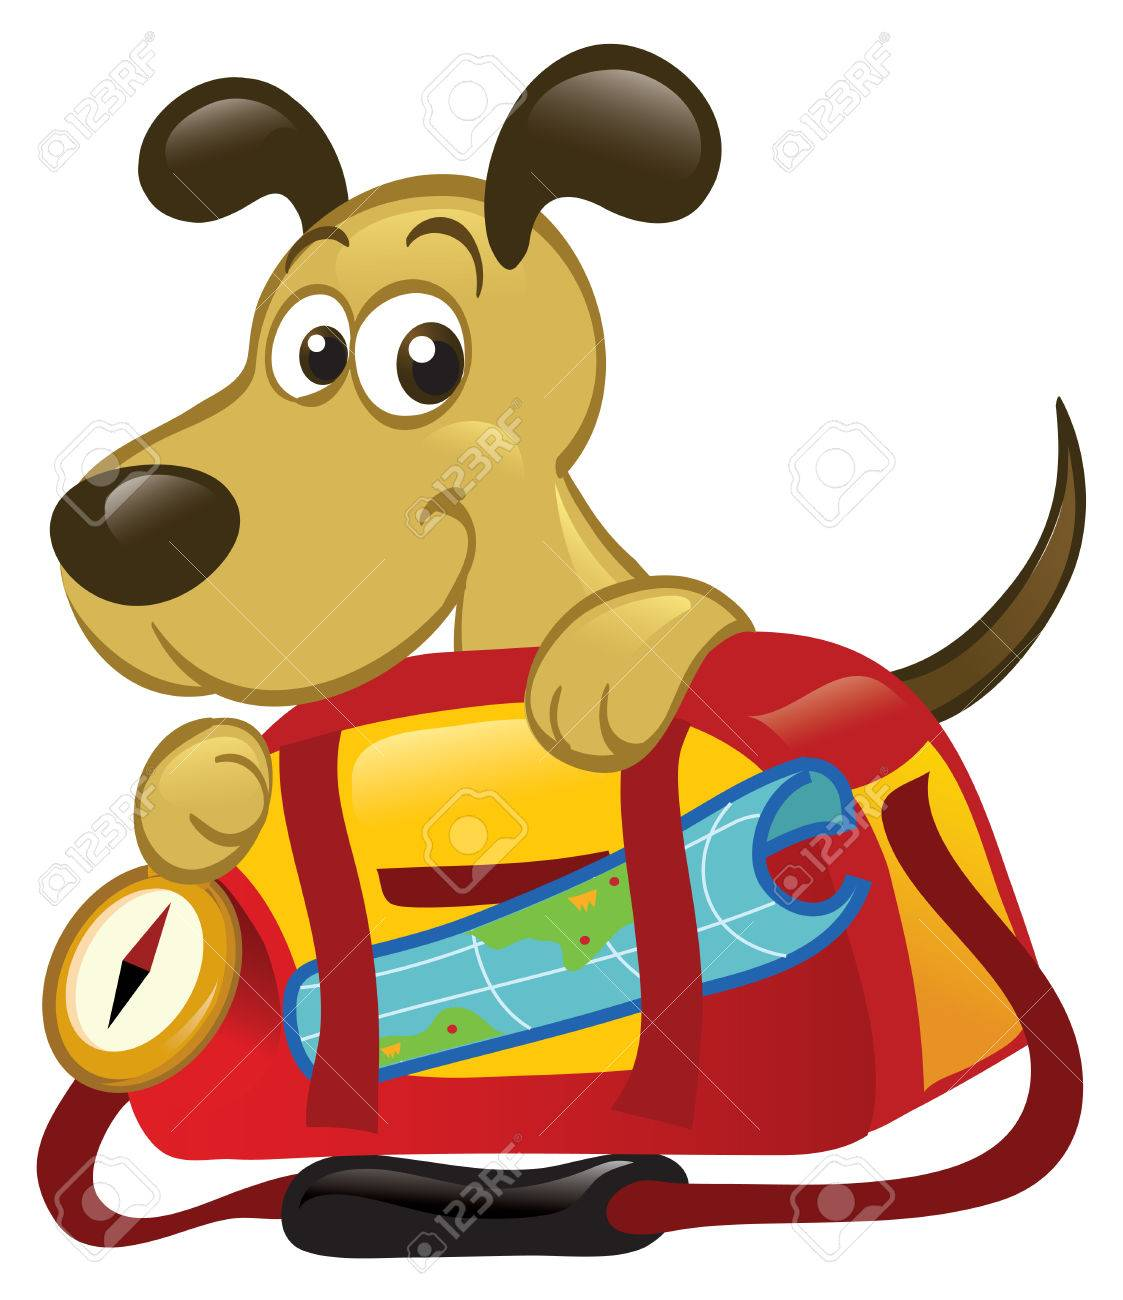 Cute Cartoon Dog Sitting Behind A Big Traveling Bag. Royalty Free ...